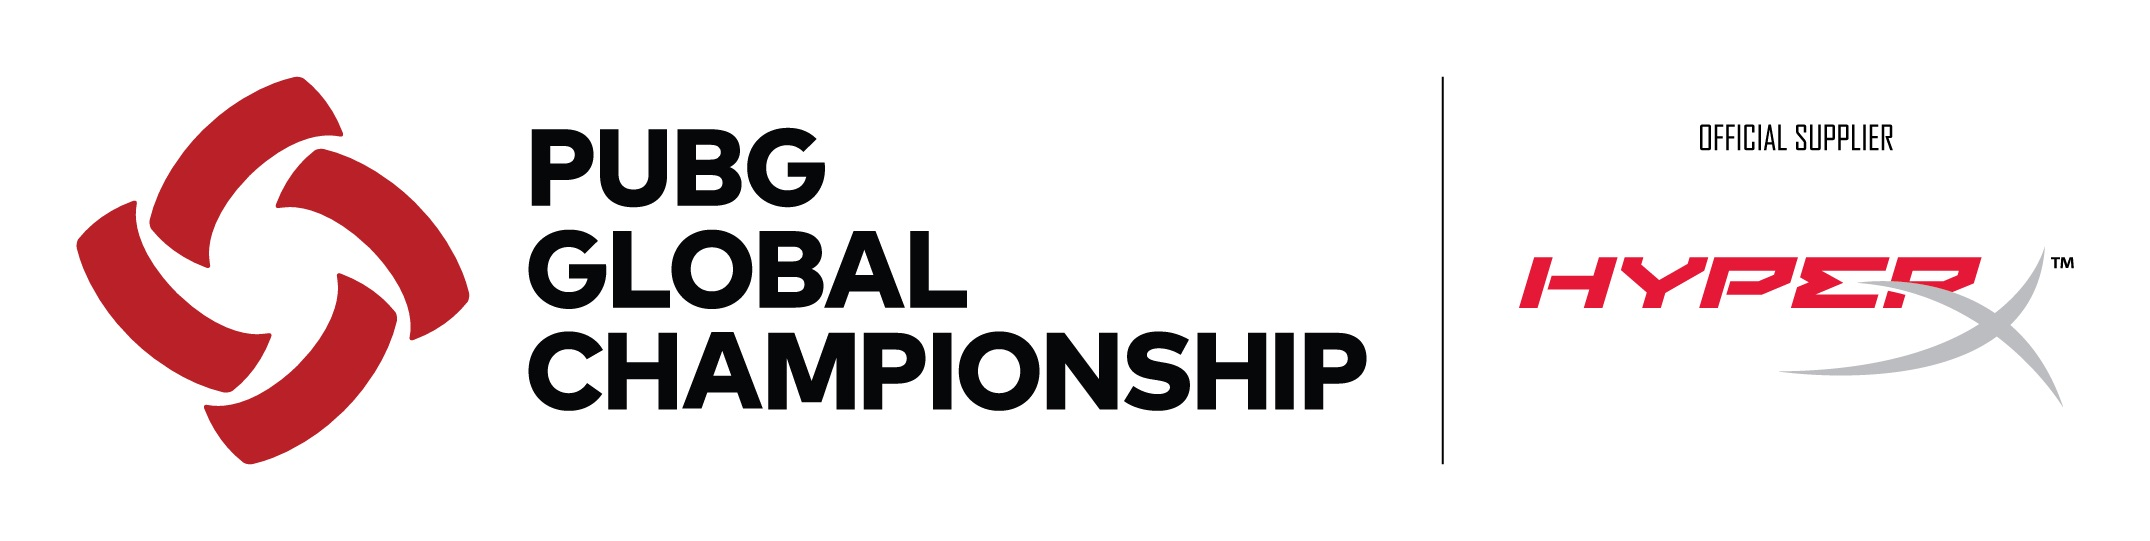 HyperX PUBG Global Championship 2019, HyperX is the Official Sponsor of PUBG Global Championship 2019, Gadget Pilipinas